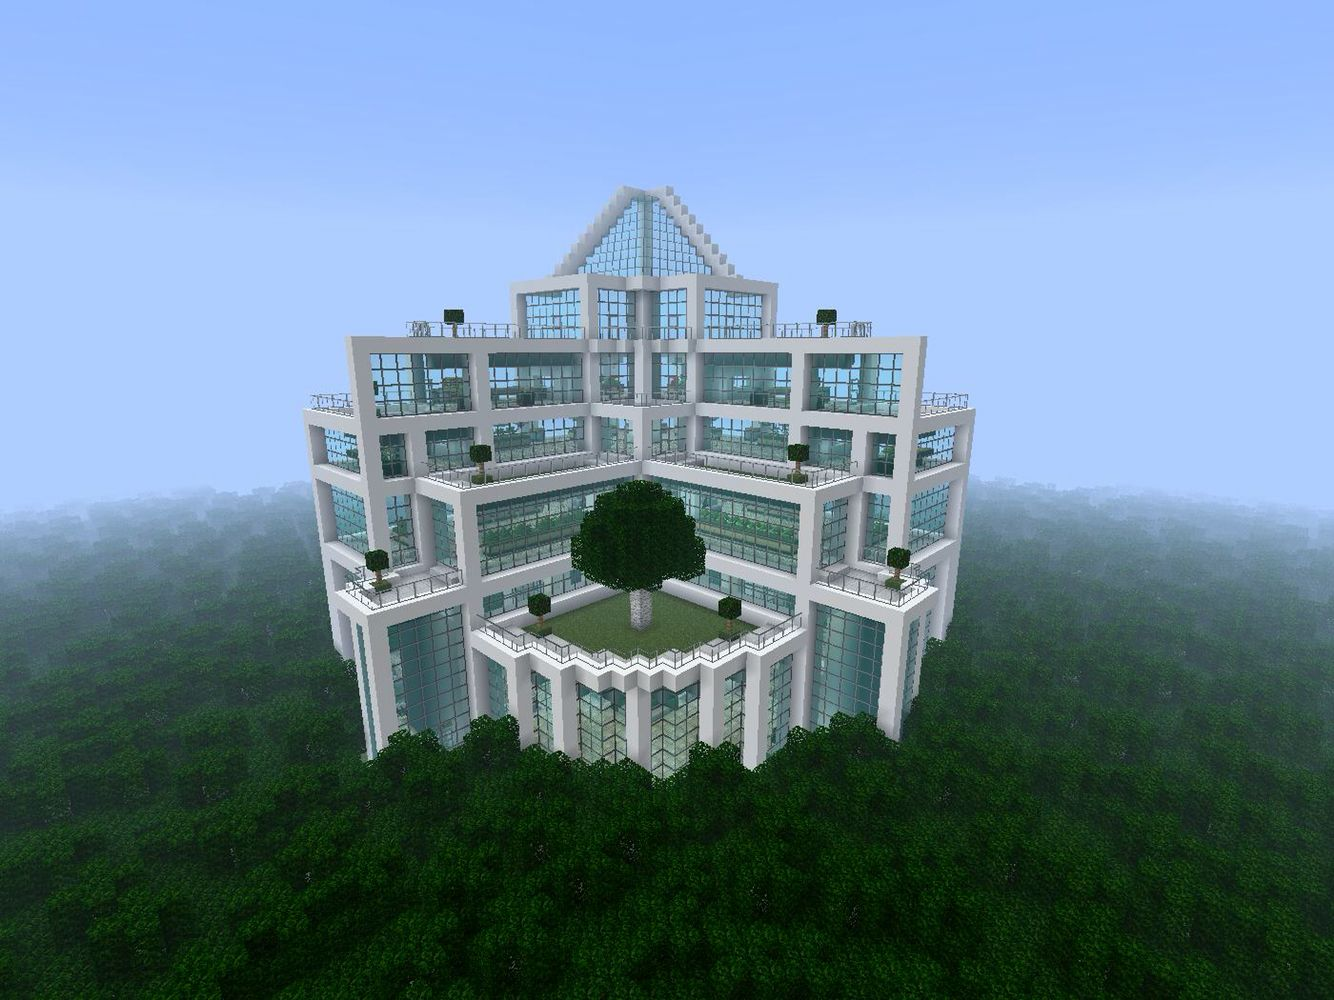 minecraft how to build a victorian house tutorial minecraft minecraft how to build a victorian house tutorial minecraft pinterest victorian house victorian and tutorials